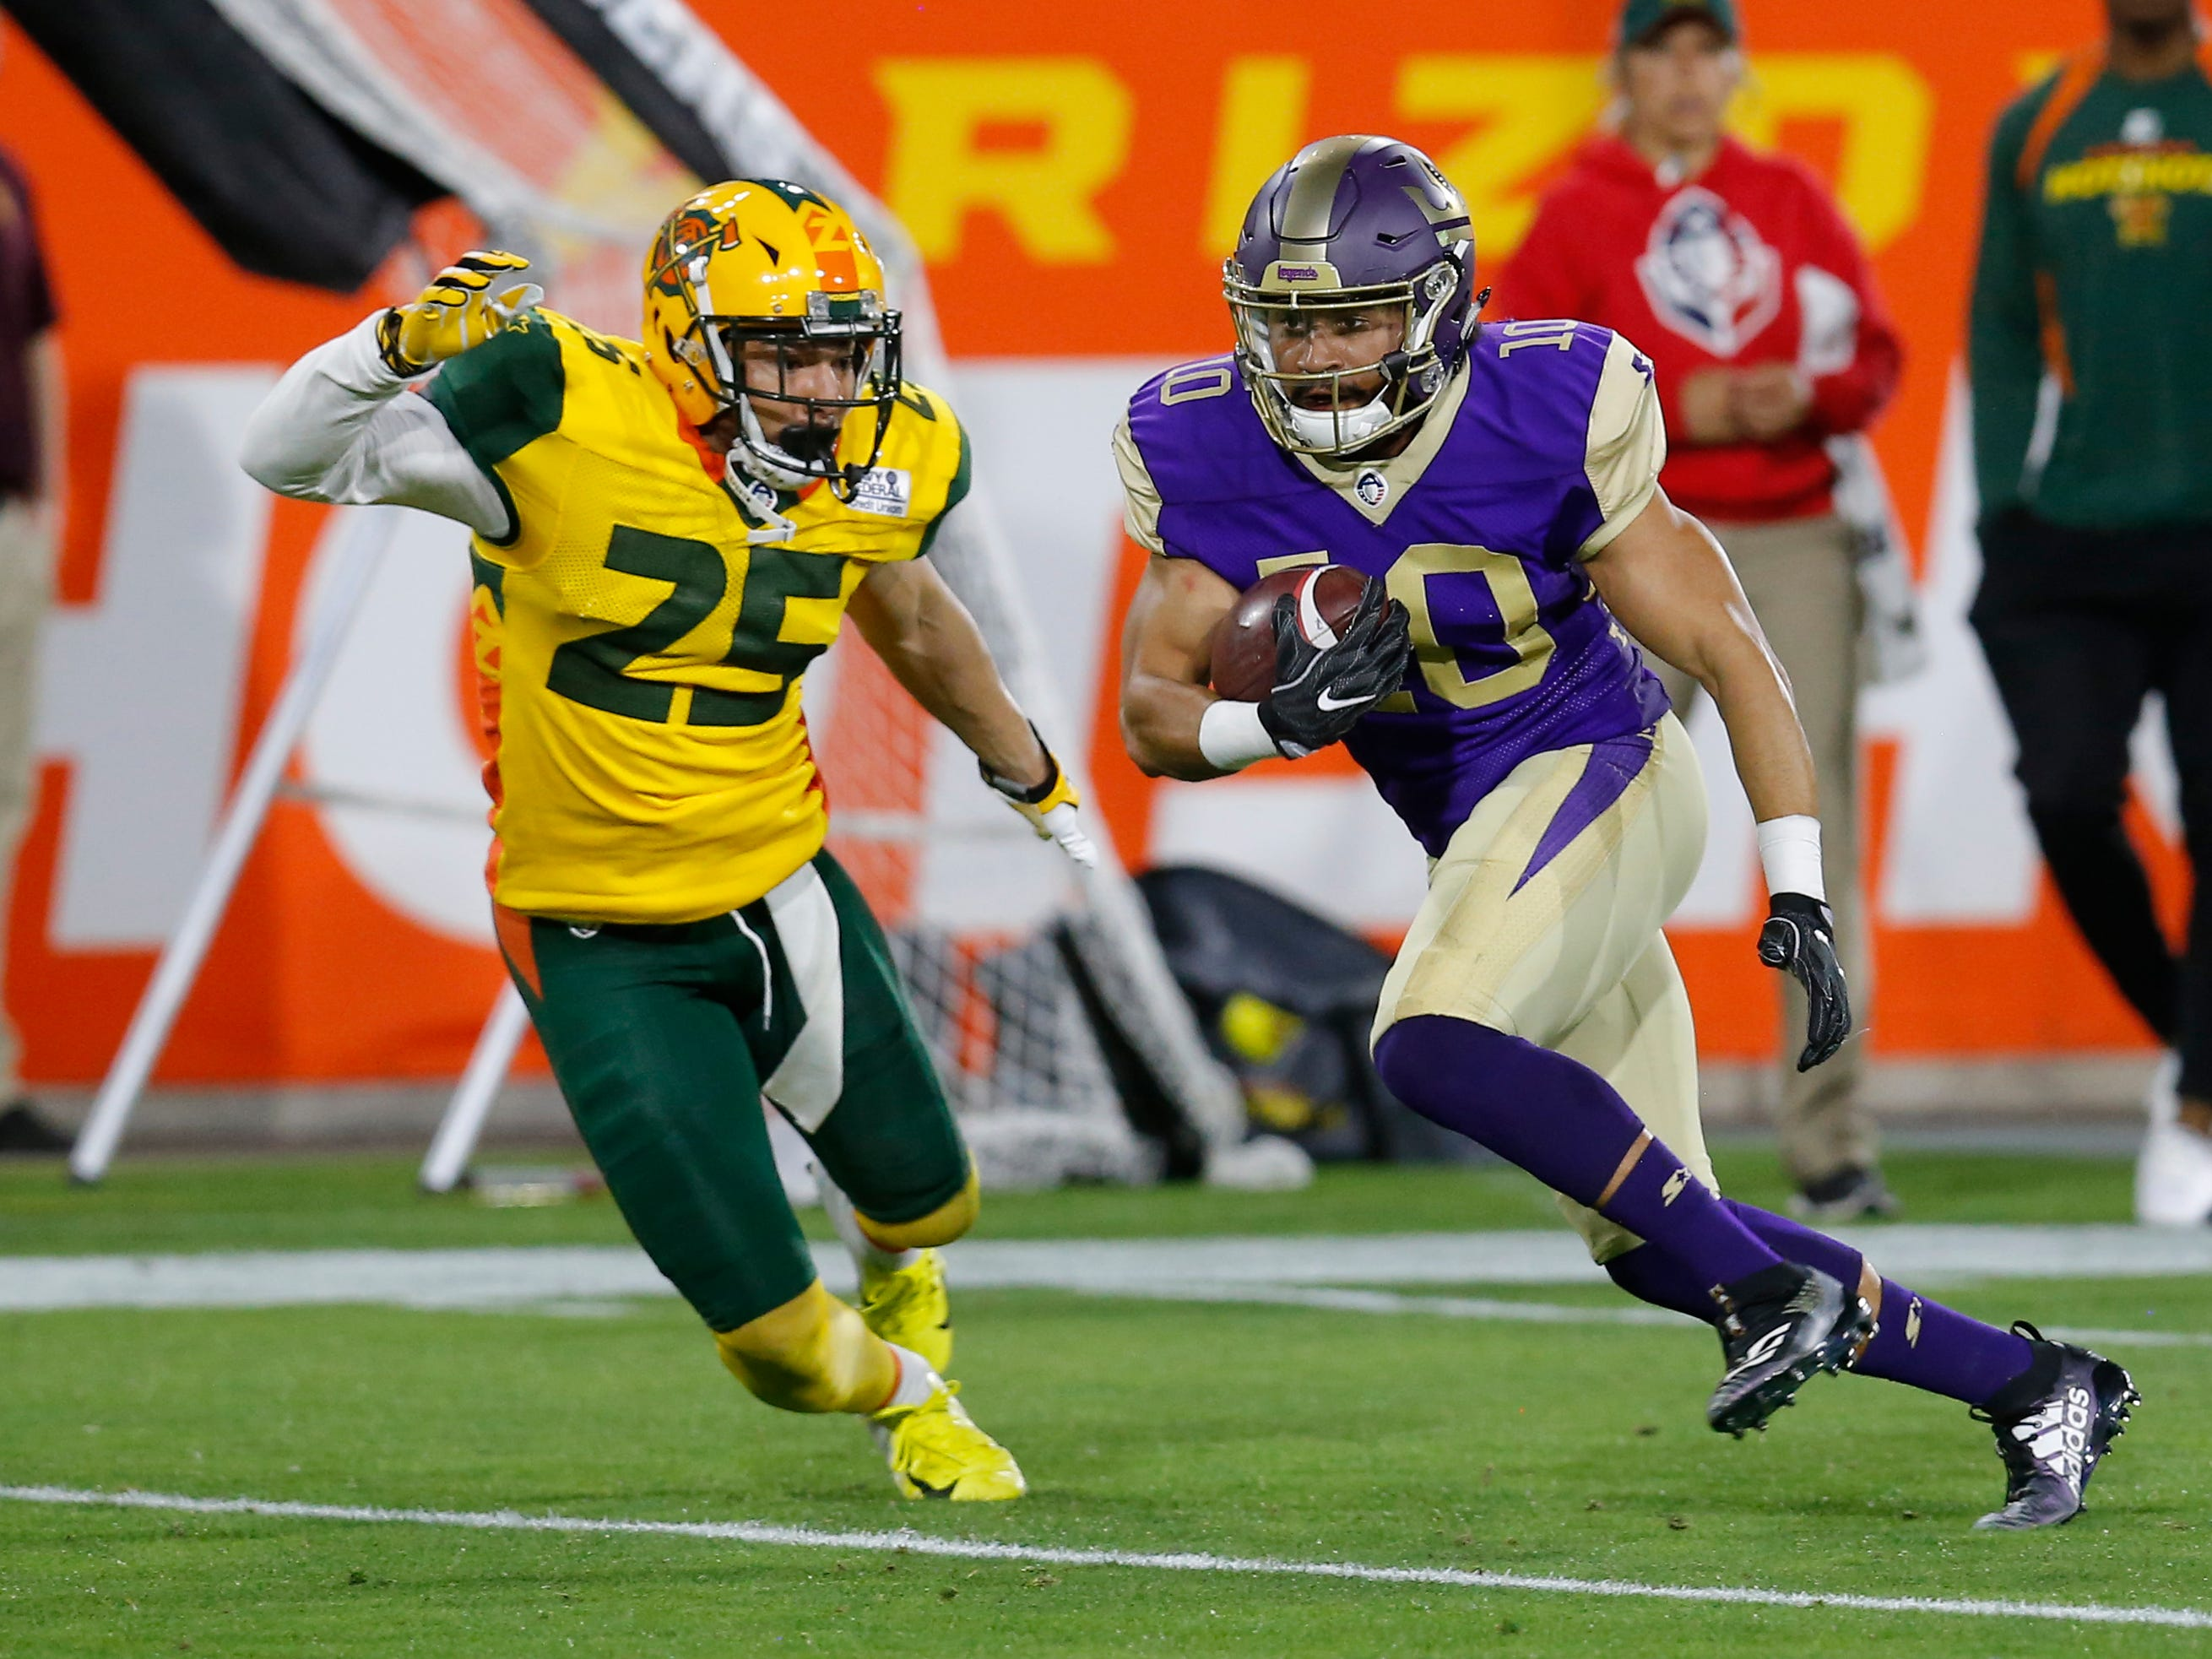 Atlanta Legends wide receiver Justin Thomas (10) runs away from Arizona Hotshots defensive back Sterling Moore (25) in the first half during an AAF football game, Sunday, March 3, 2019, at Sun Devil Stadium in Phoenix.